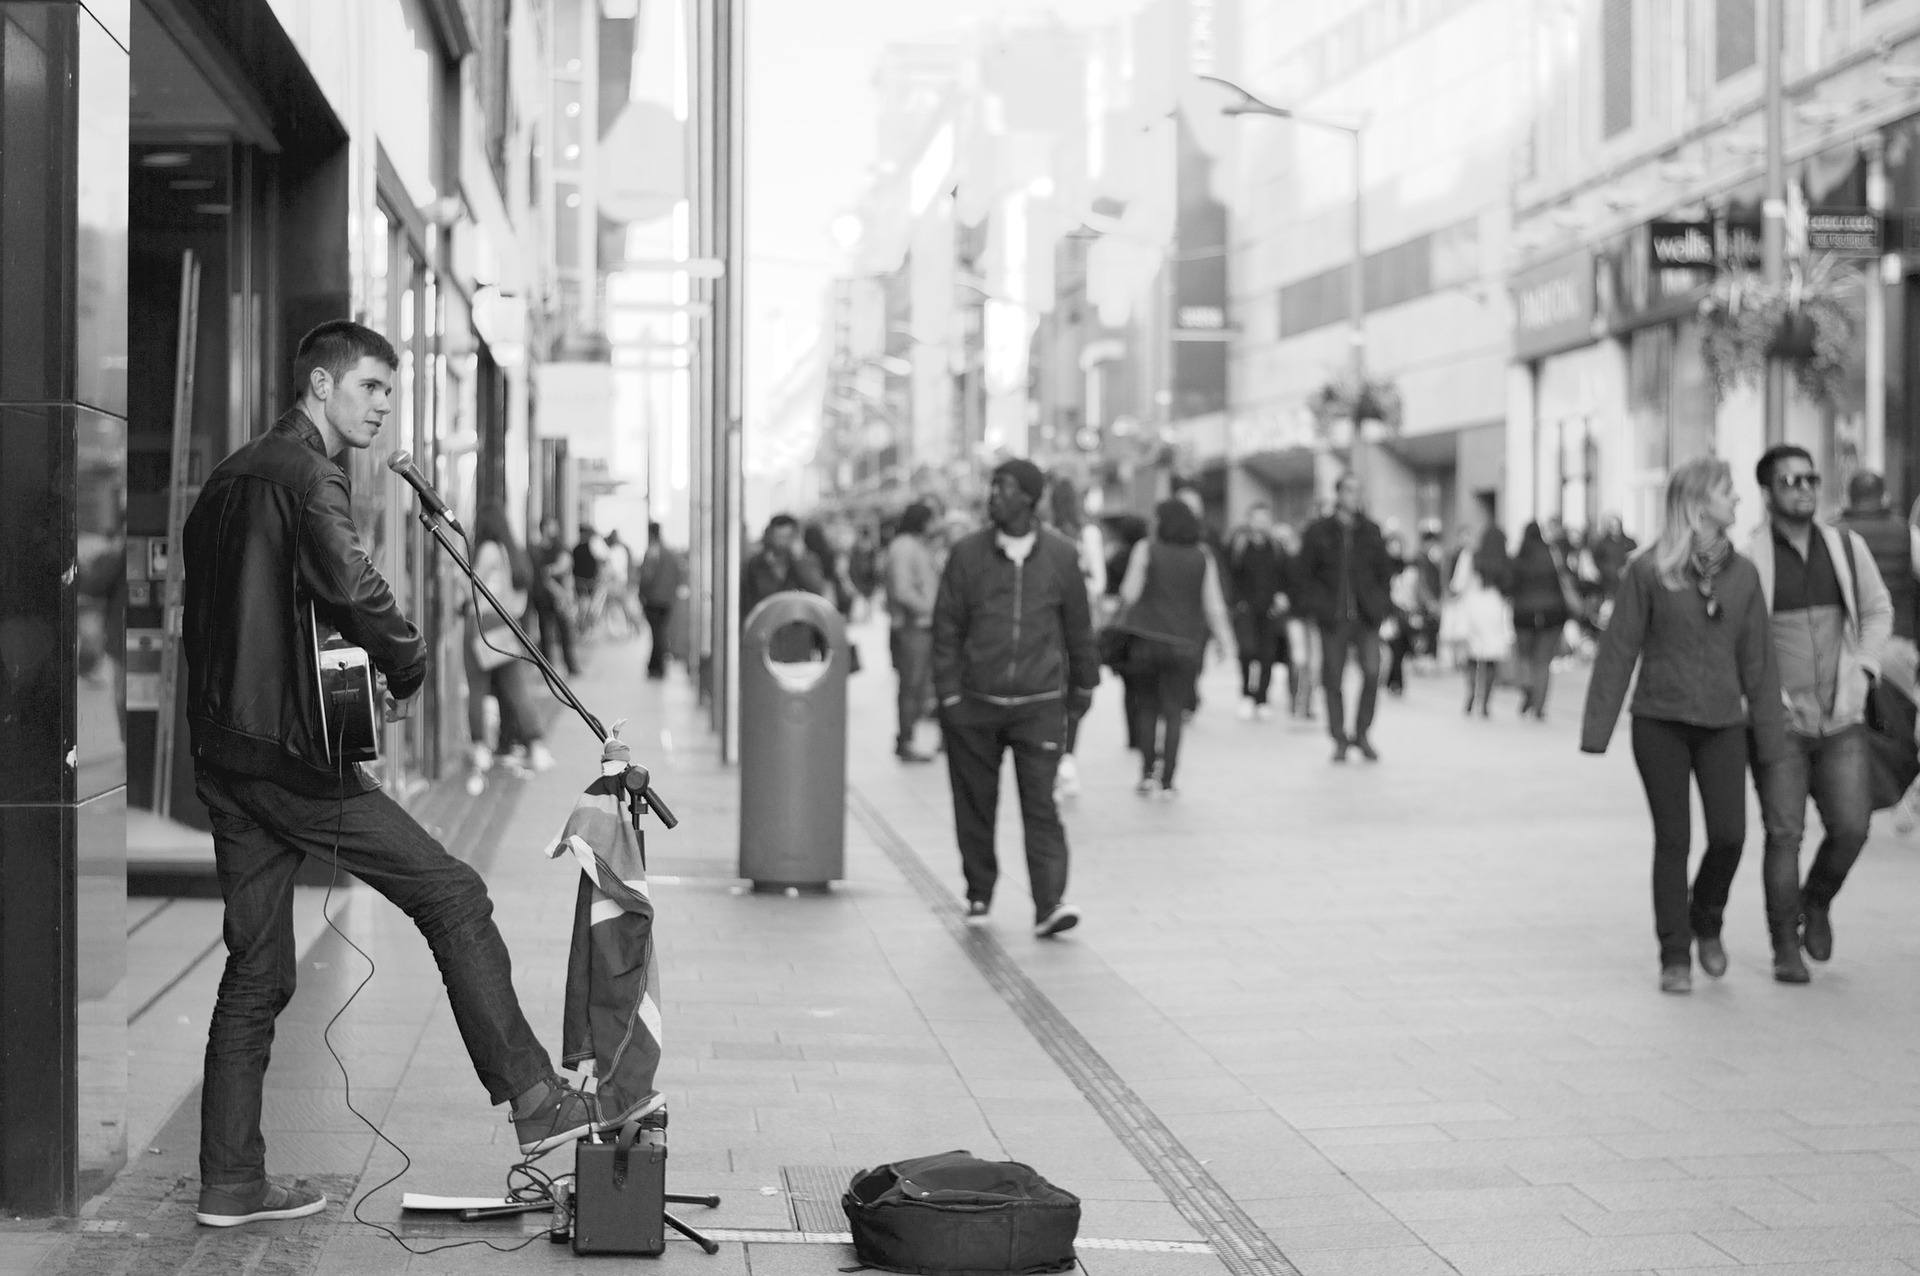 Some buskers on the street